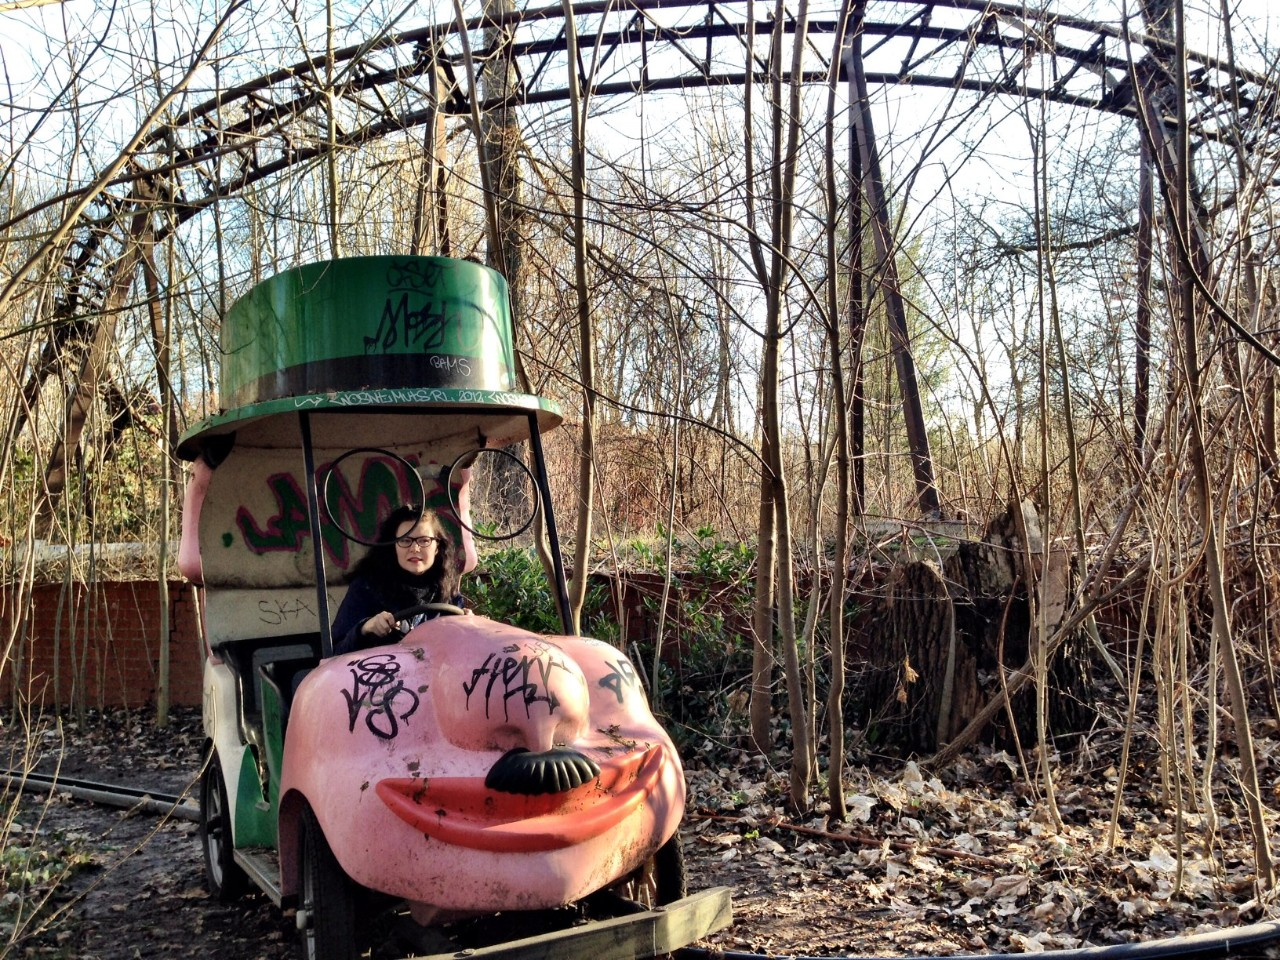 Spreepark In Berlin Is An Abandoned Theme Park With An